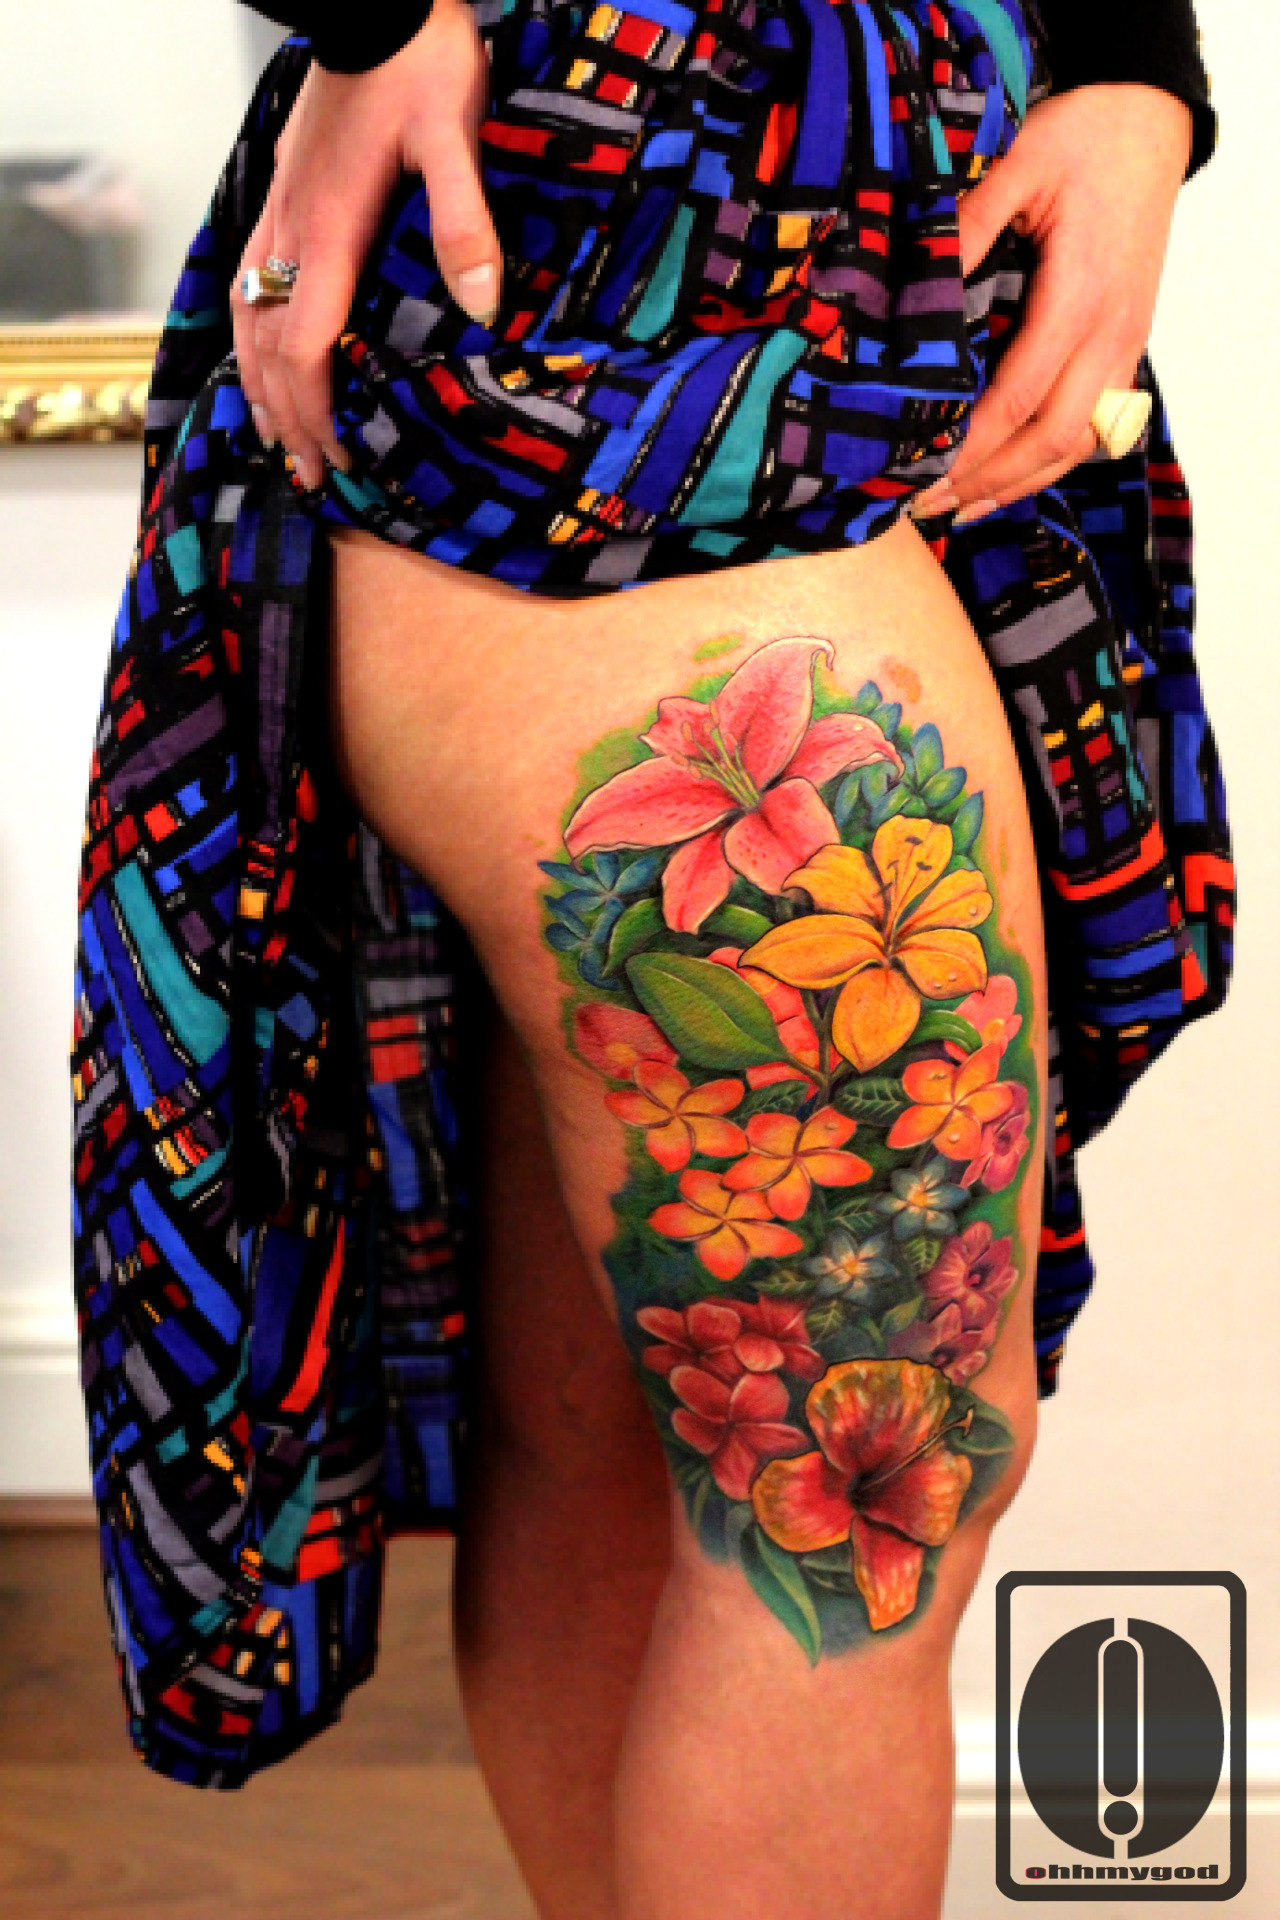 Flower tattoos tender and feminine best tattoo ideas gallery lily tattoo lily tattoo red tulip on a girls body says of the passionate love she experiences now however the yellow flower will tell us a sad story of izmirmasajfo